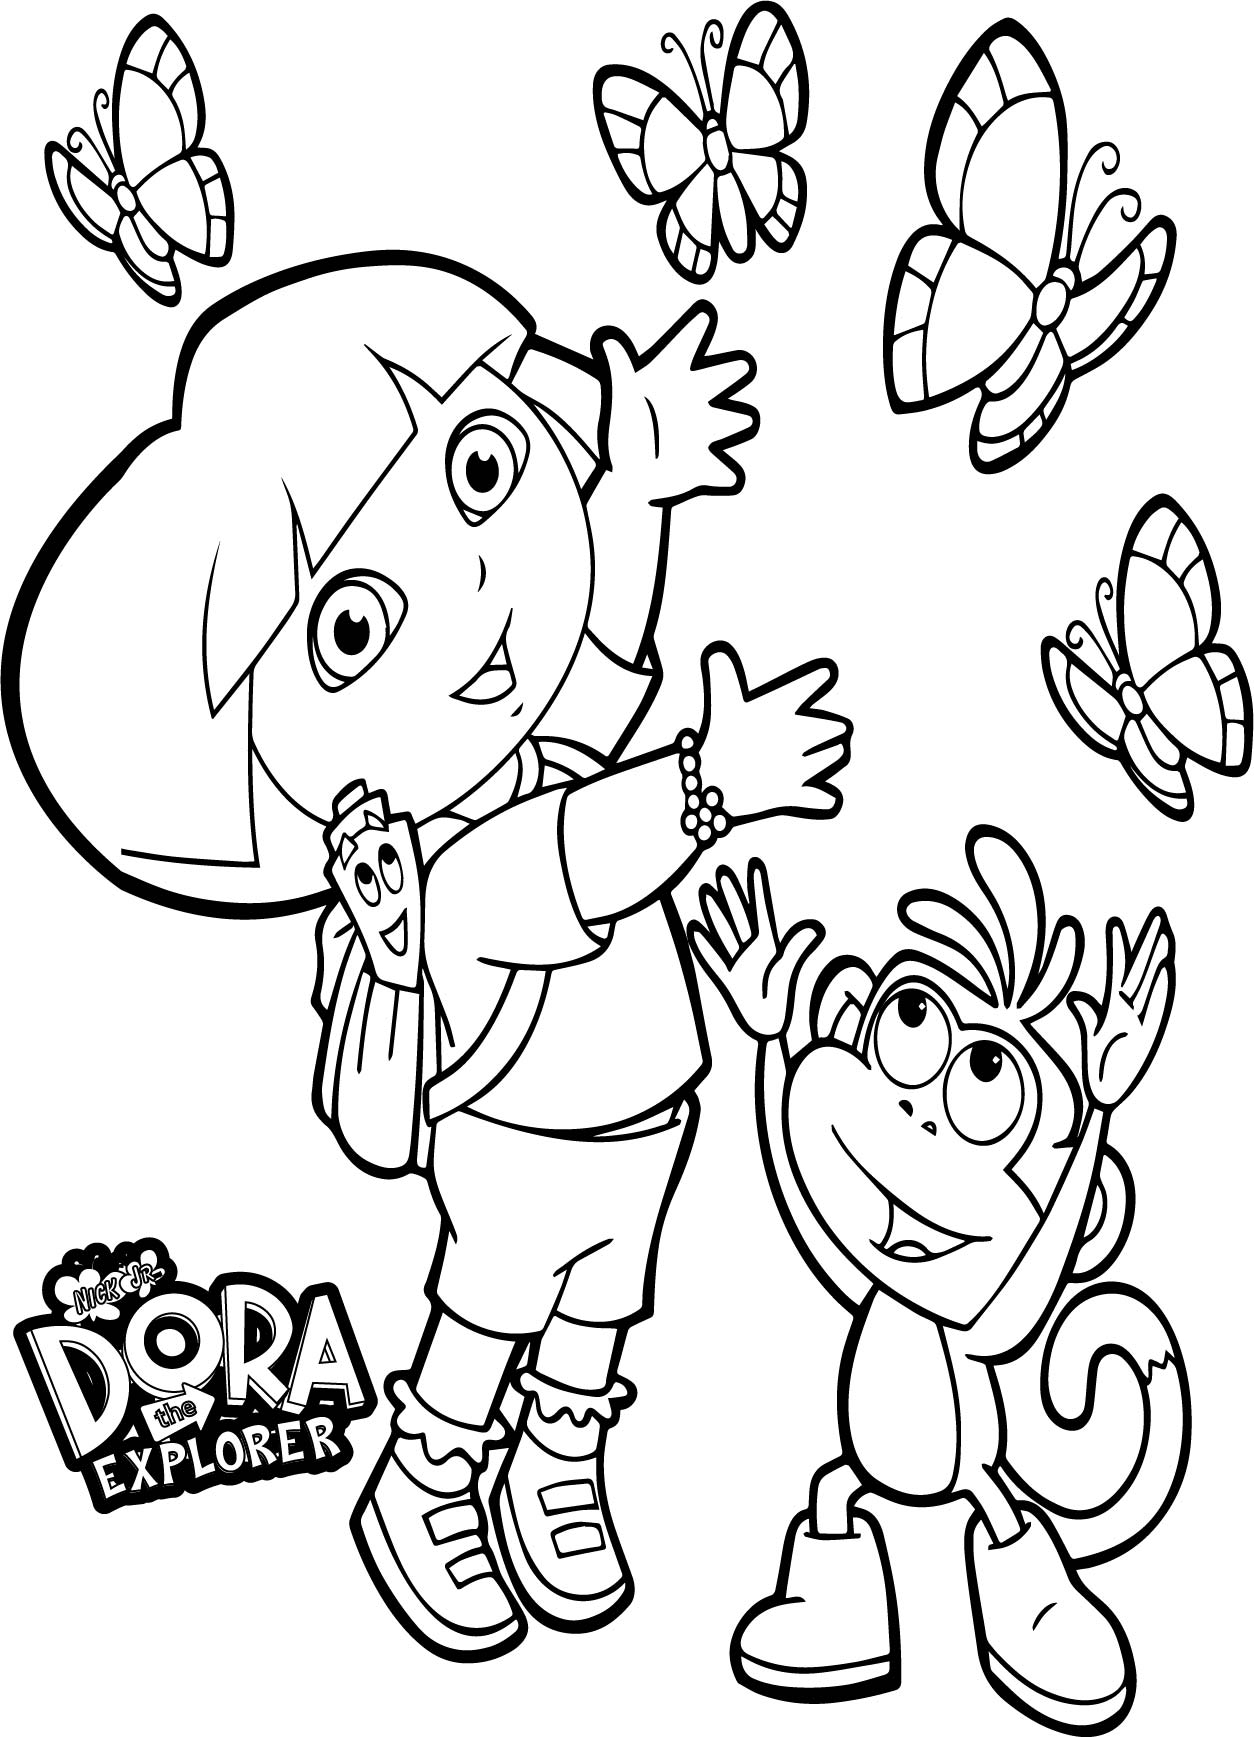 Dora And Monkey Playing With Butterflies Coloring Page